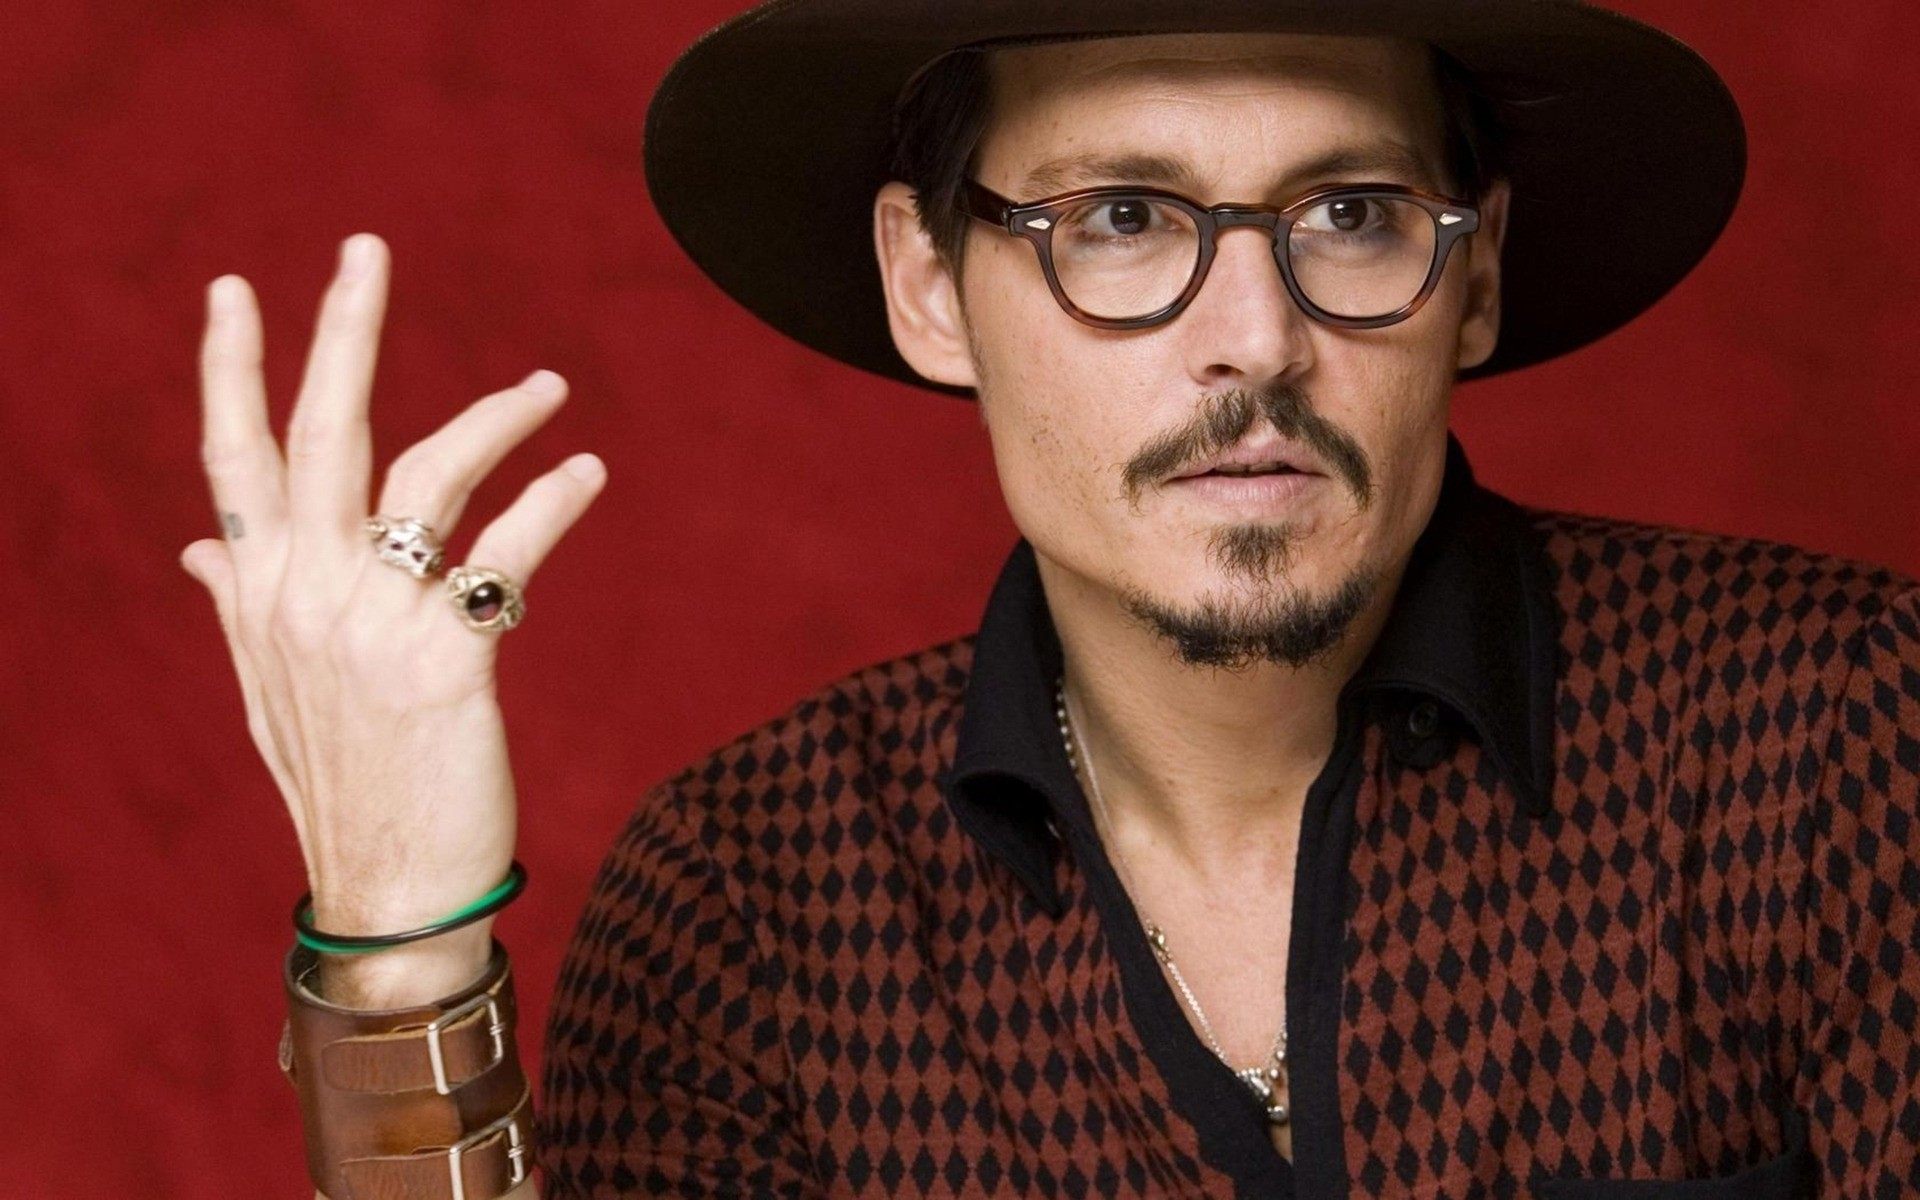 a1b3e3de42b8b Johnny Depp with Glasses. iPhone wallpapers for free.